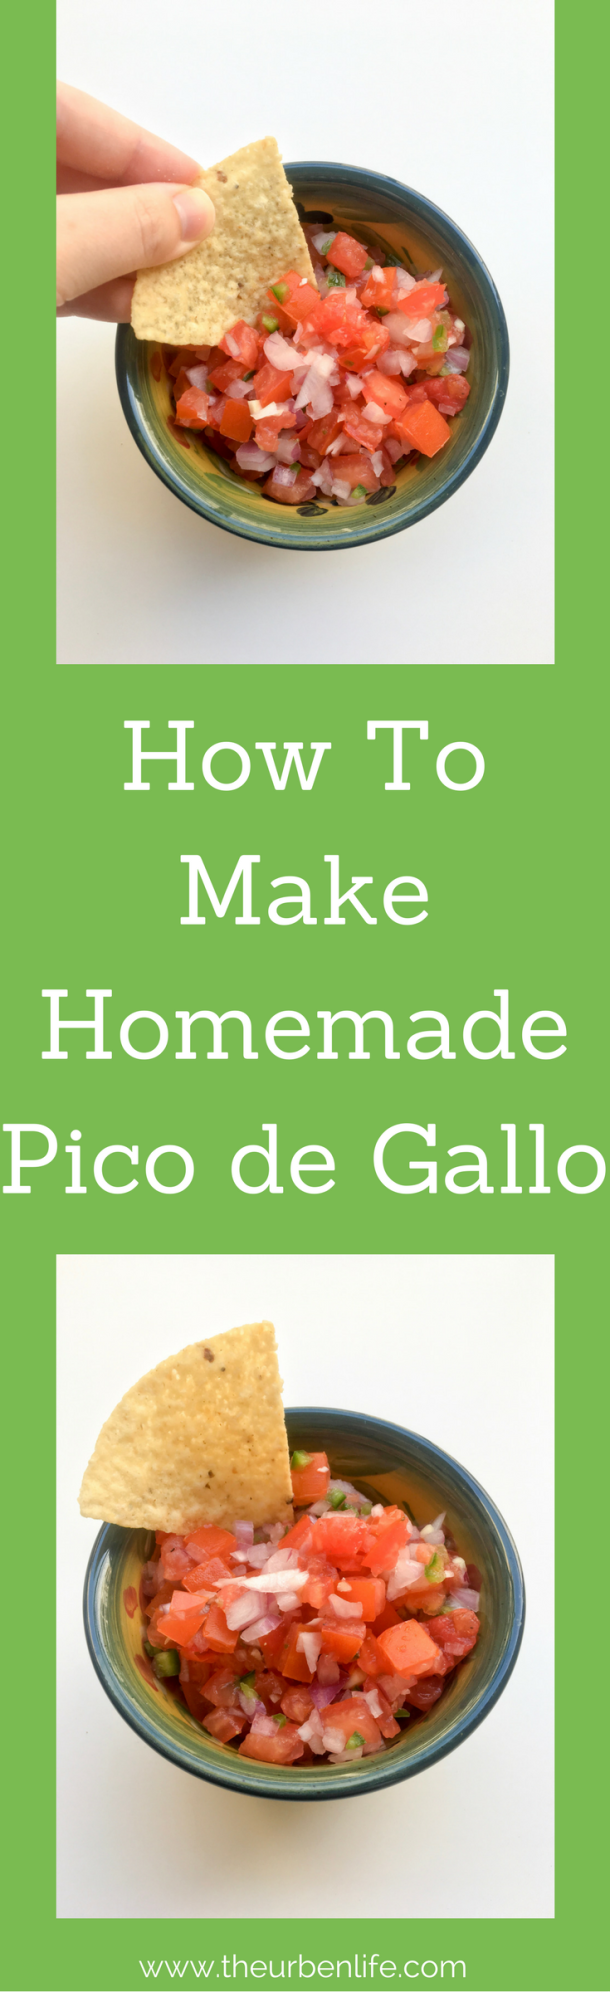 How To Make Homemade Pico de Gallo